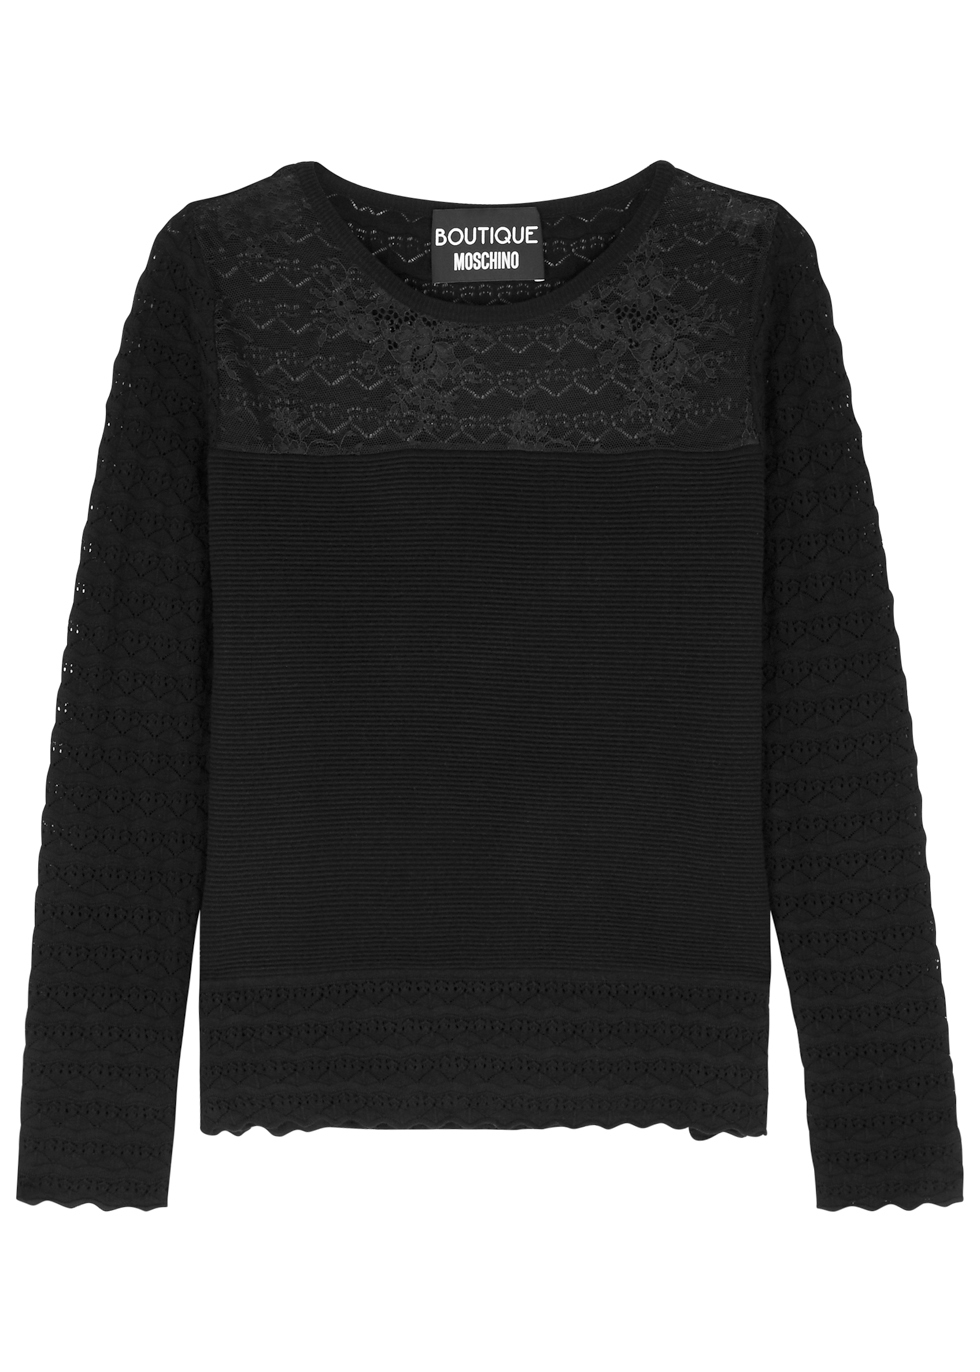 BOUTIQUE MOSCHINO BLACK RIBBED JERSEY JUMPER